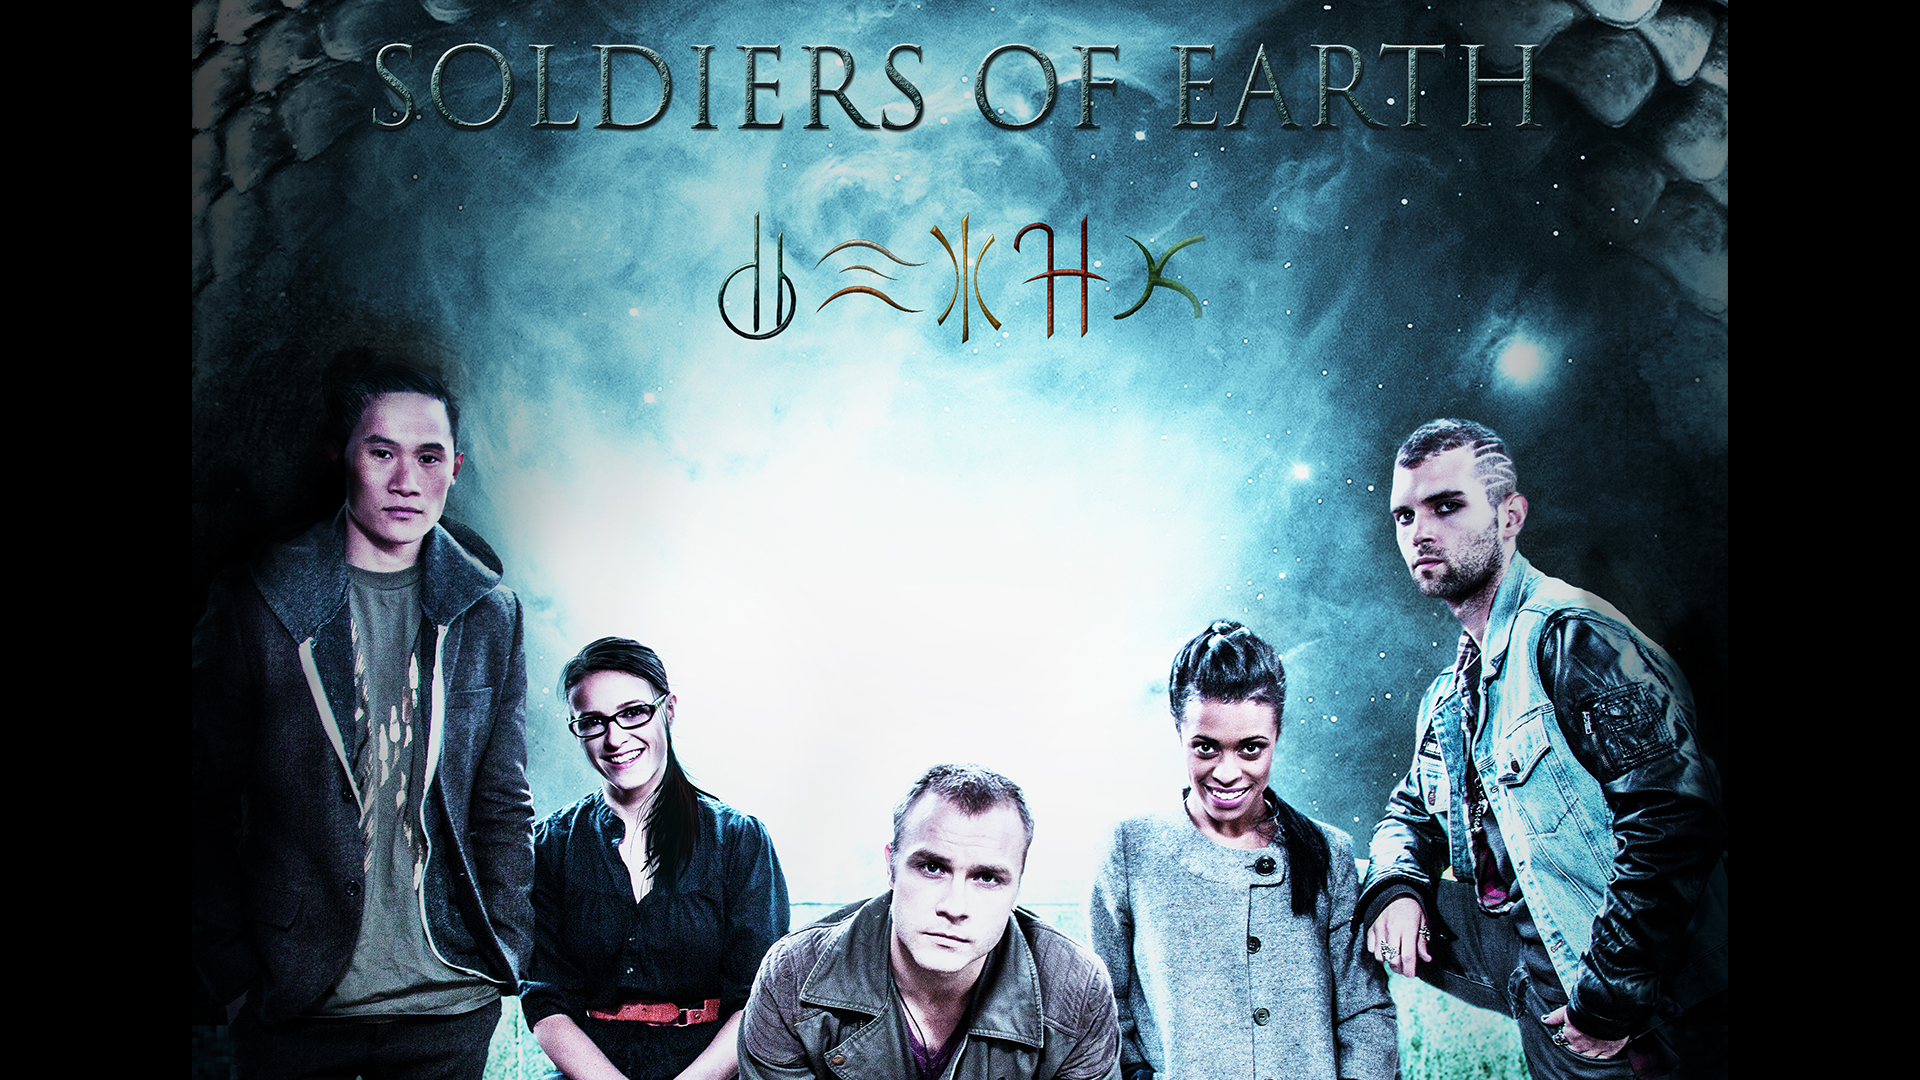 Soldiers of Earth